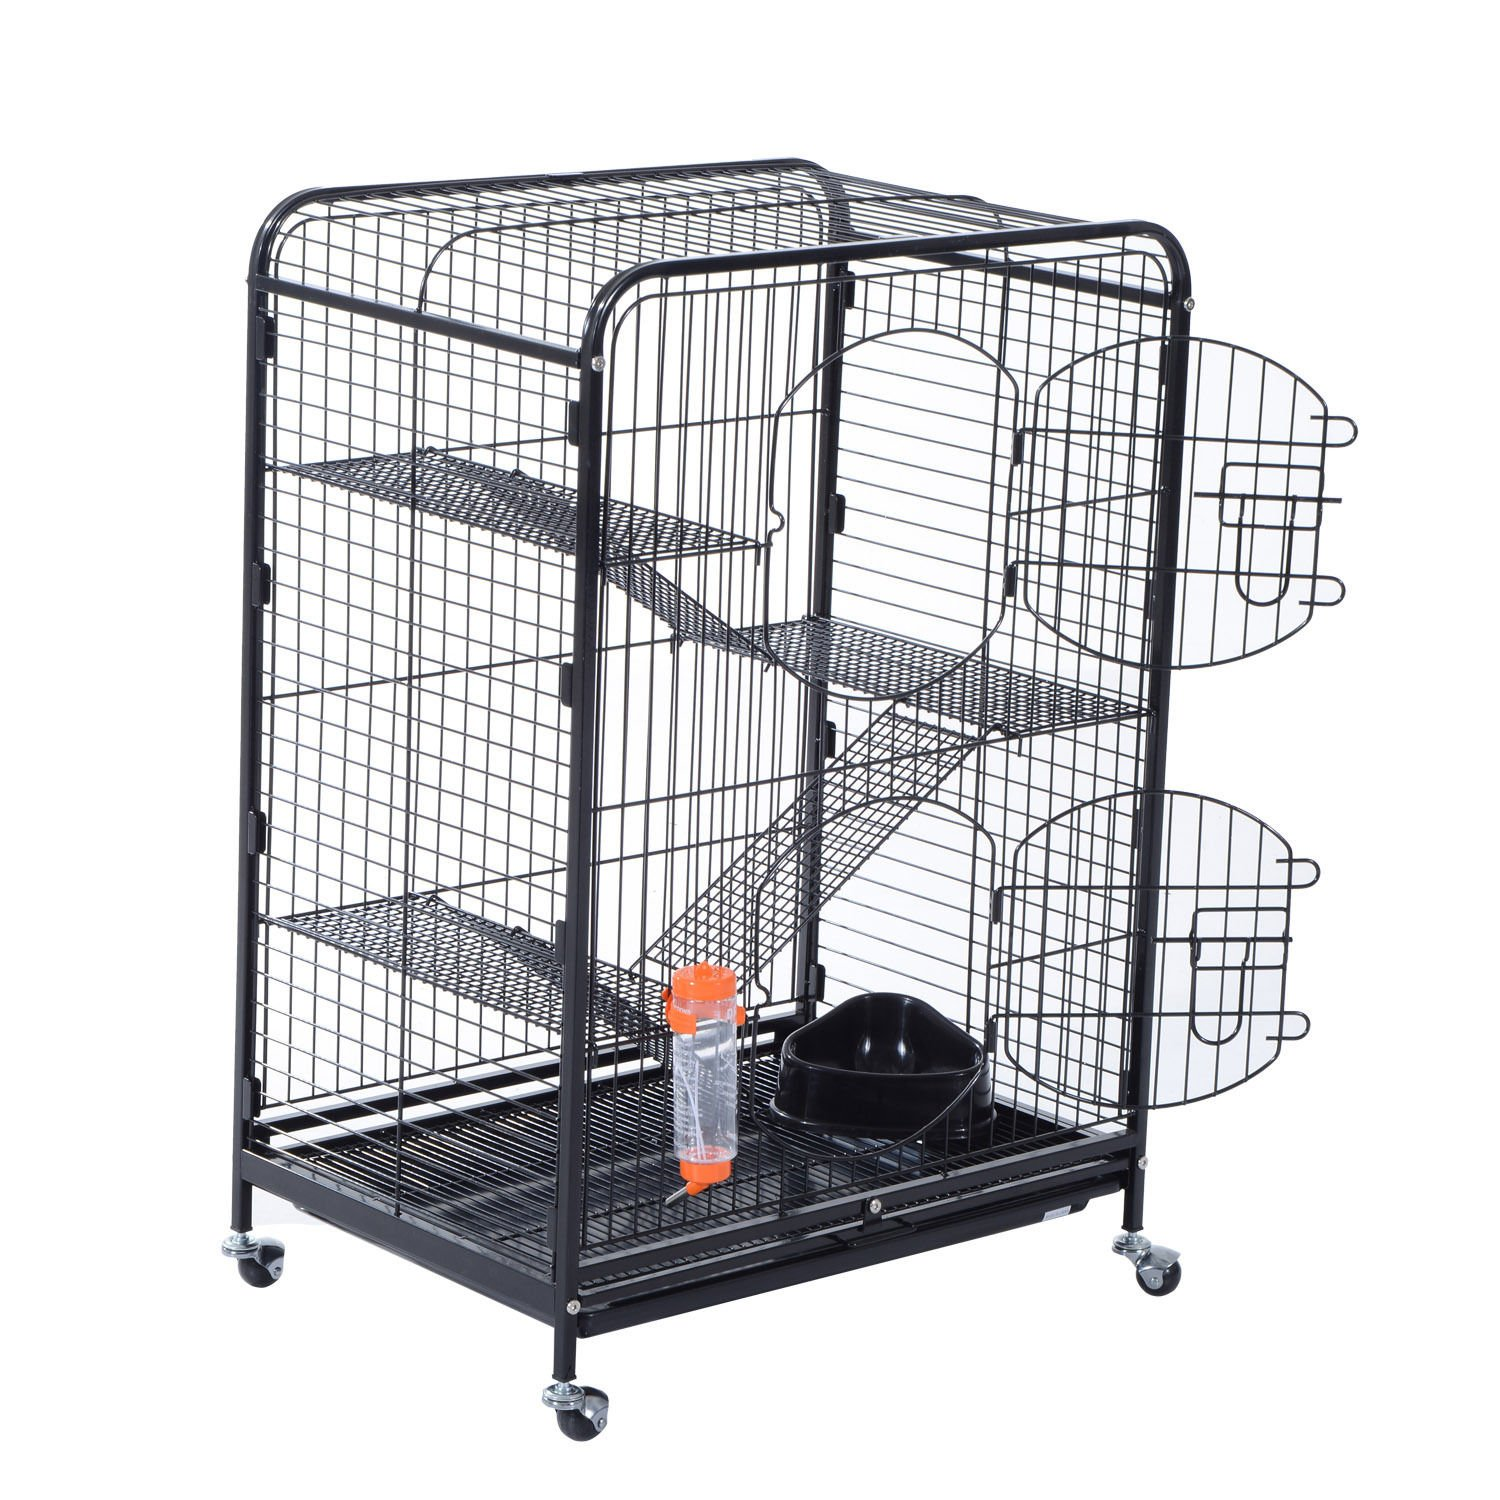 PawHut 37'' 4 Level Indoor Portable Pet Habitat Small Animal Cage Kit With Mesh Shelves And Ramps - Black by PawHut